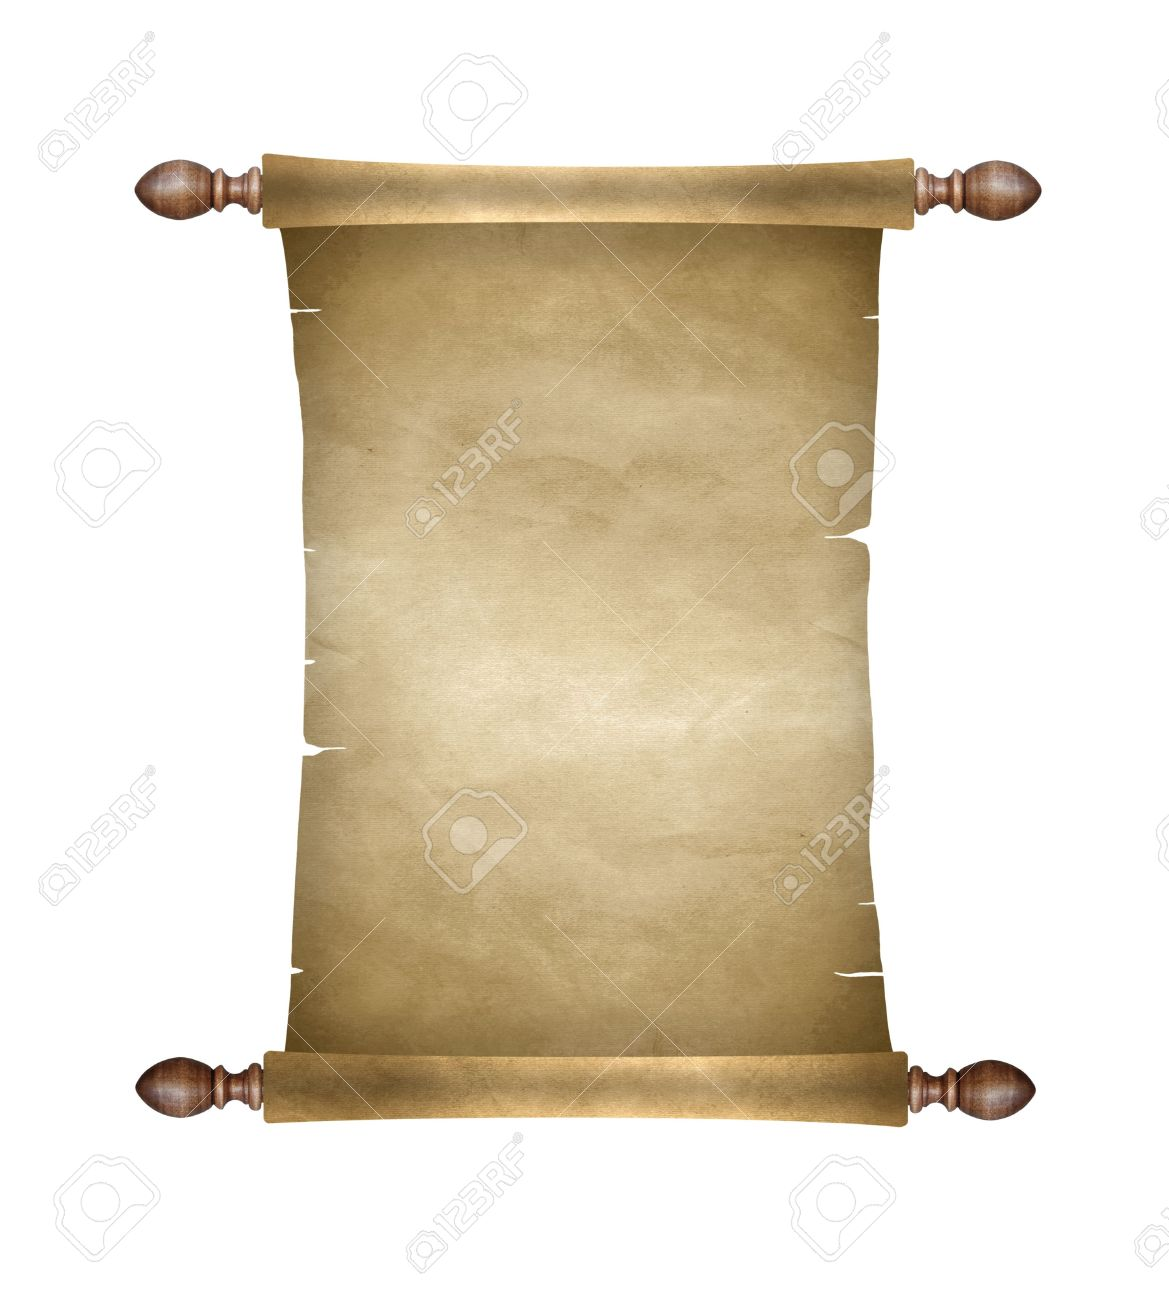 Old blank paper scroll - 38632288